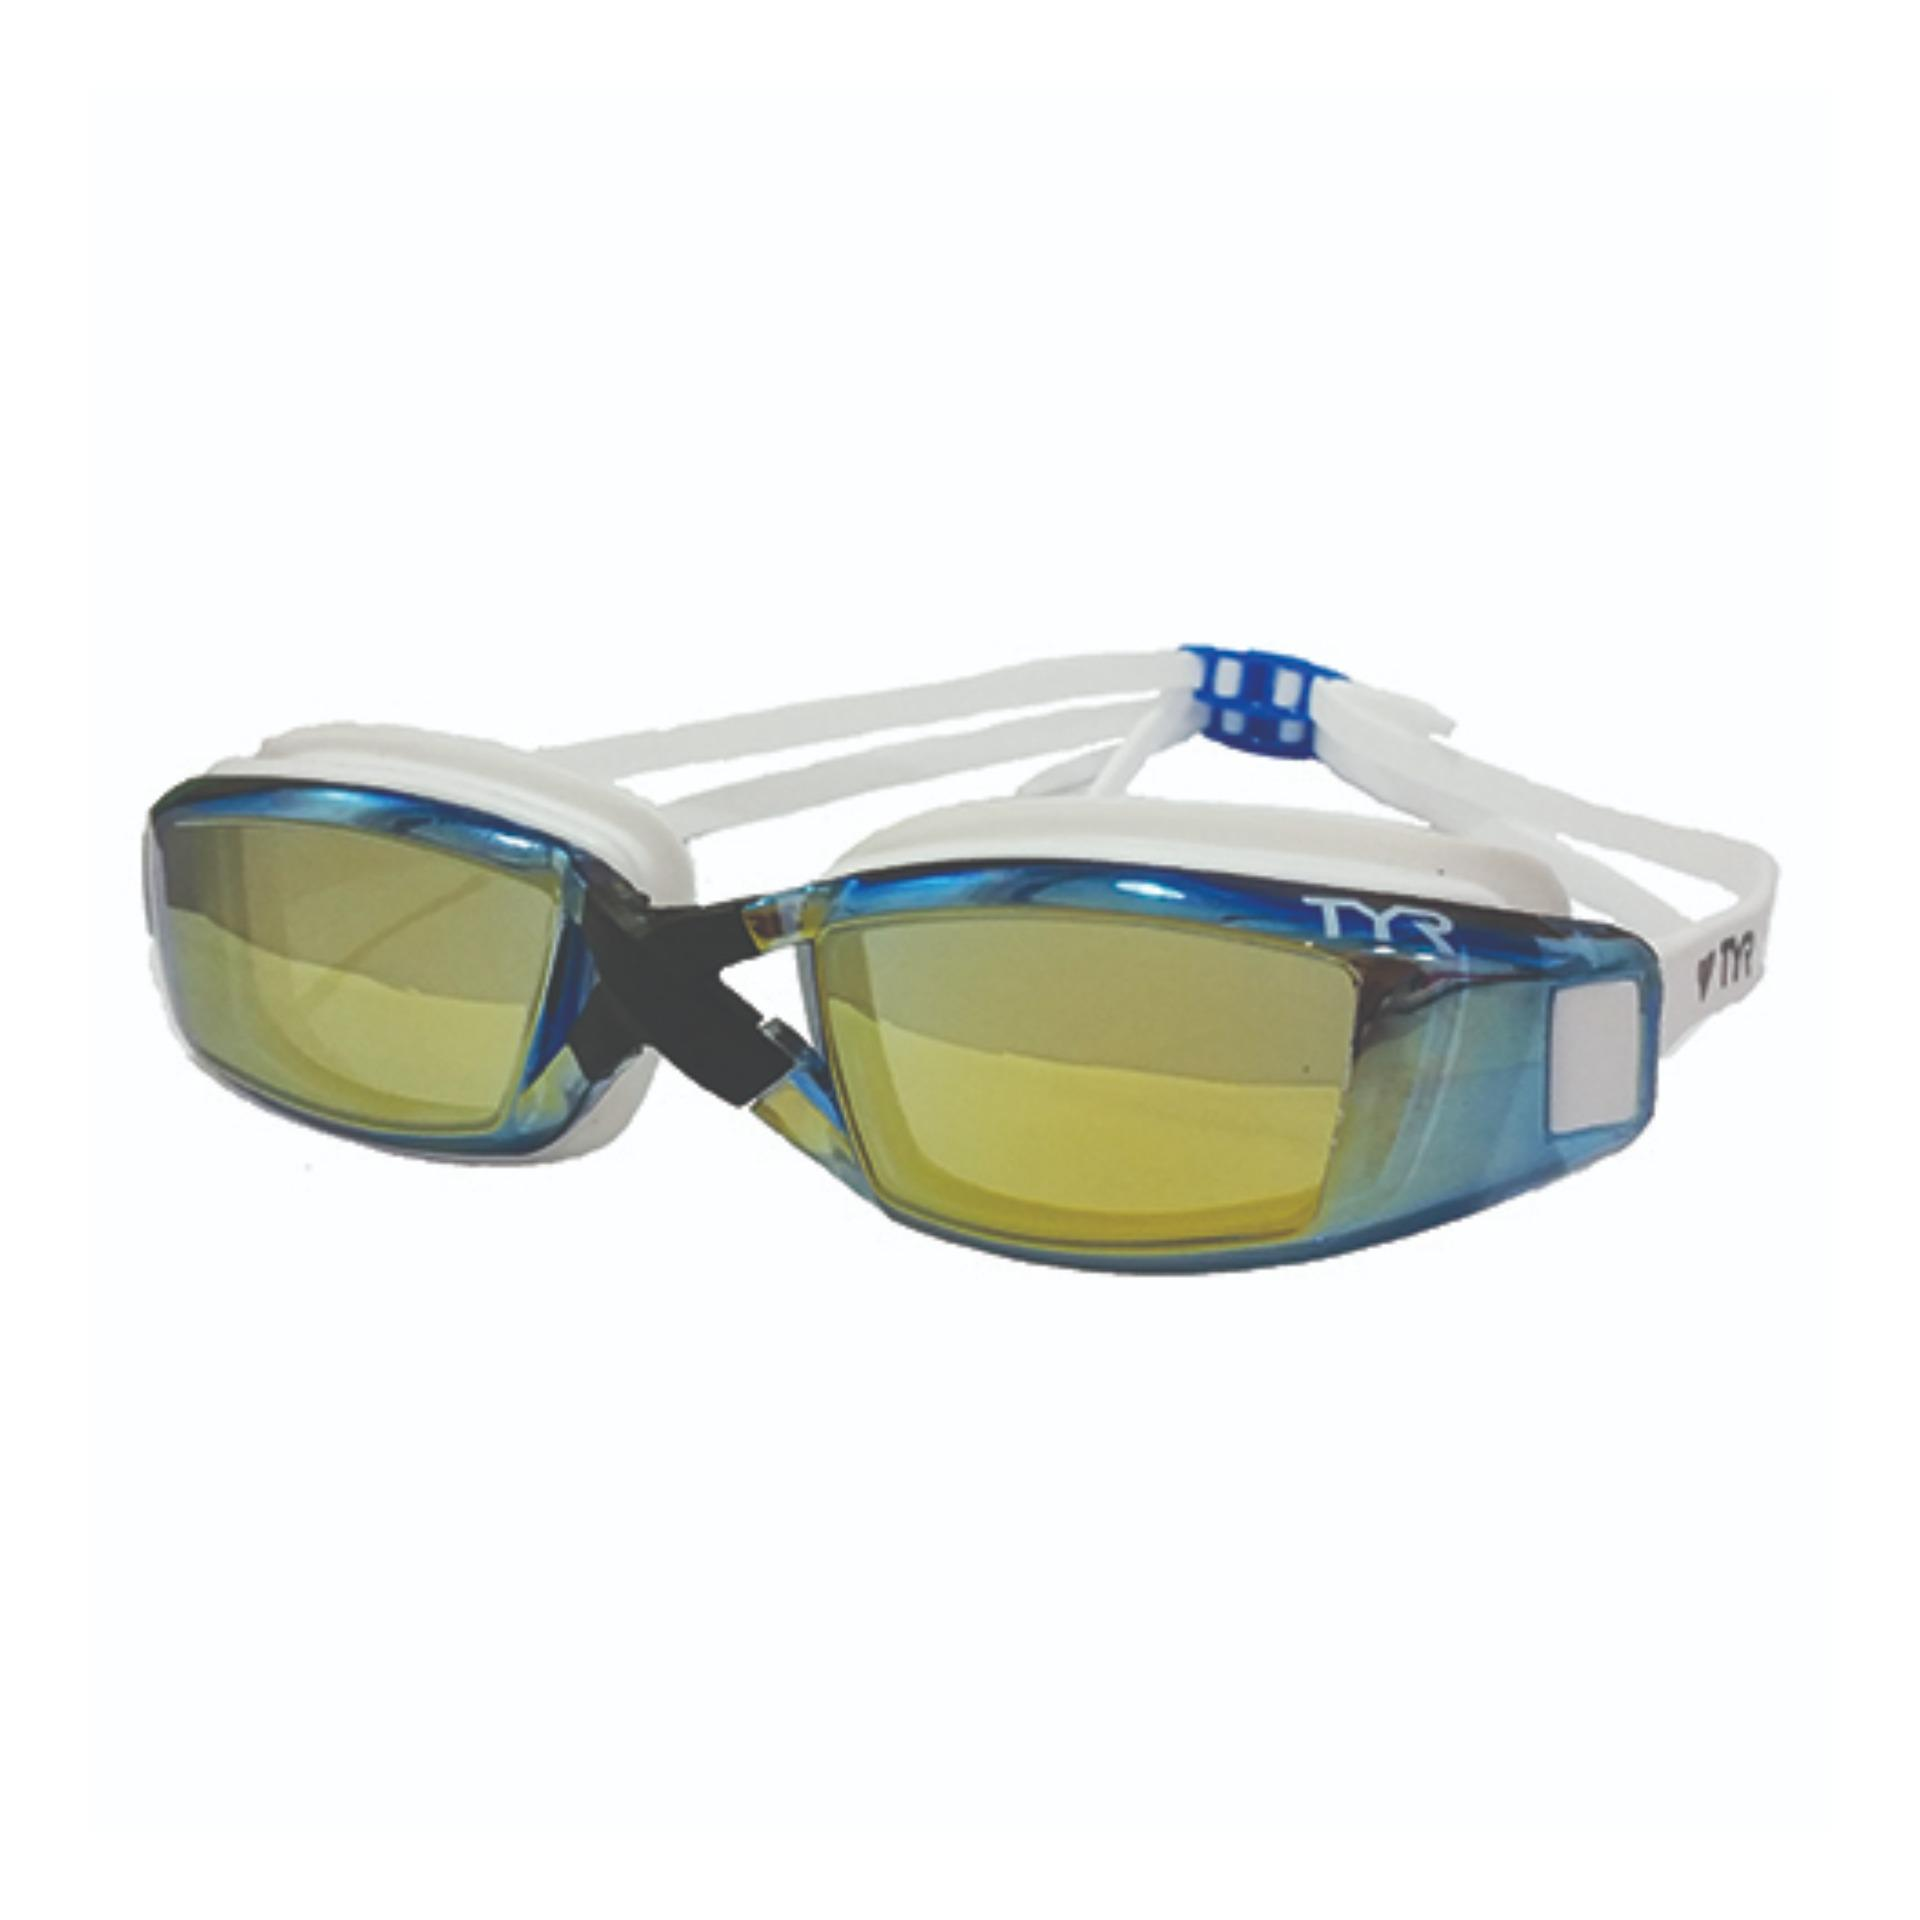 Buy Tyr Inferno Metallised Goggles Tyr